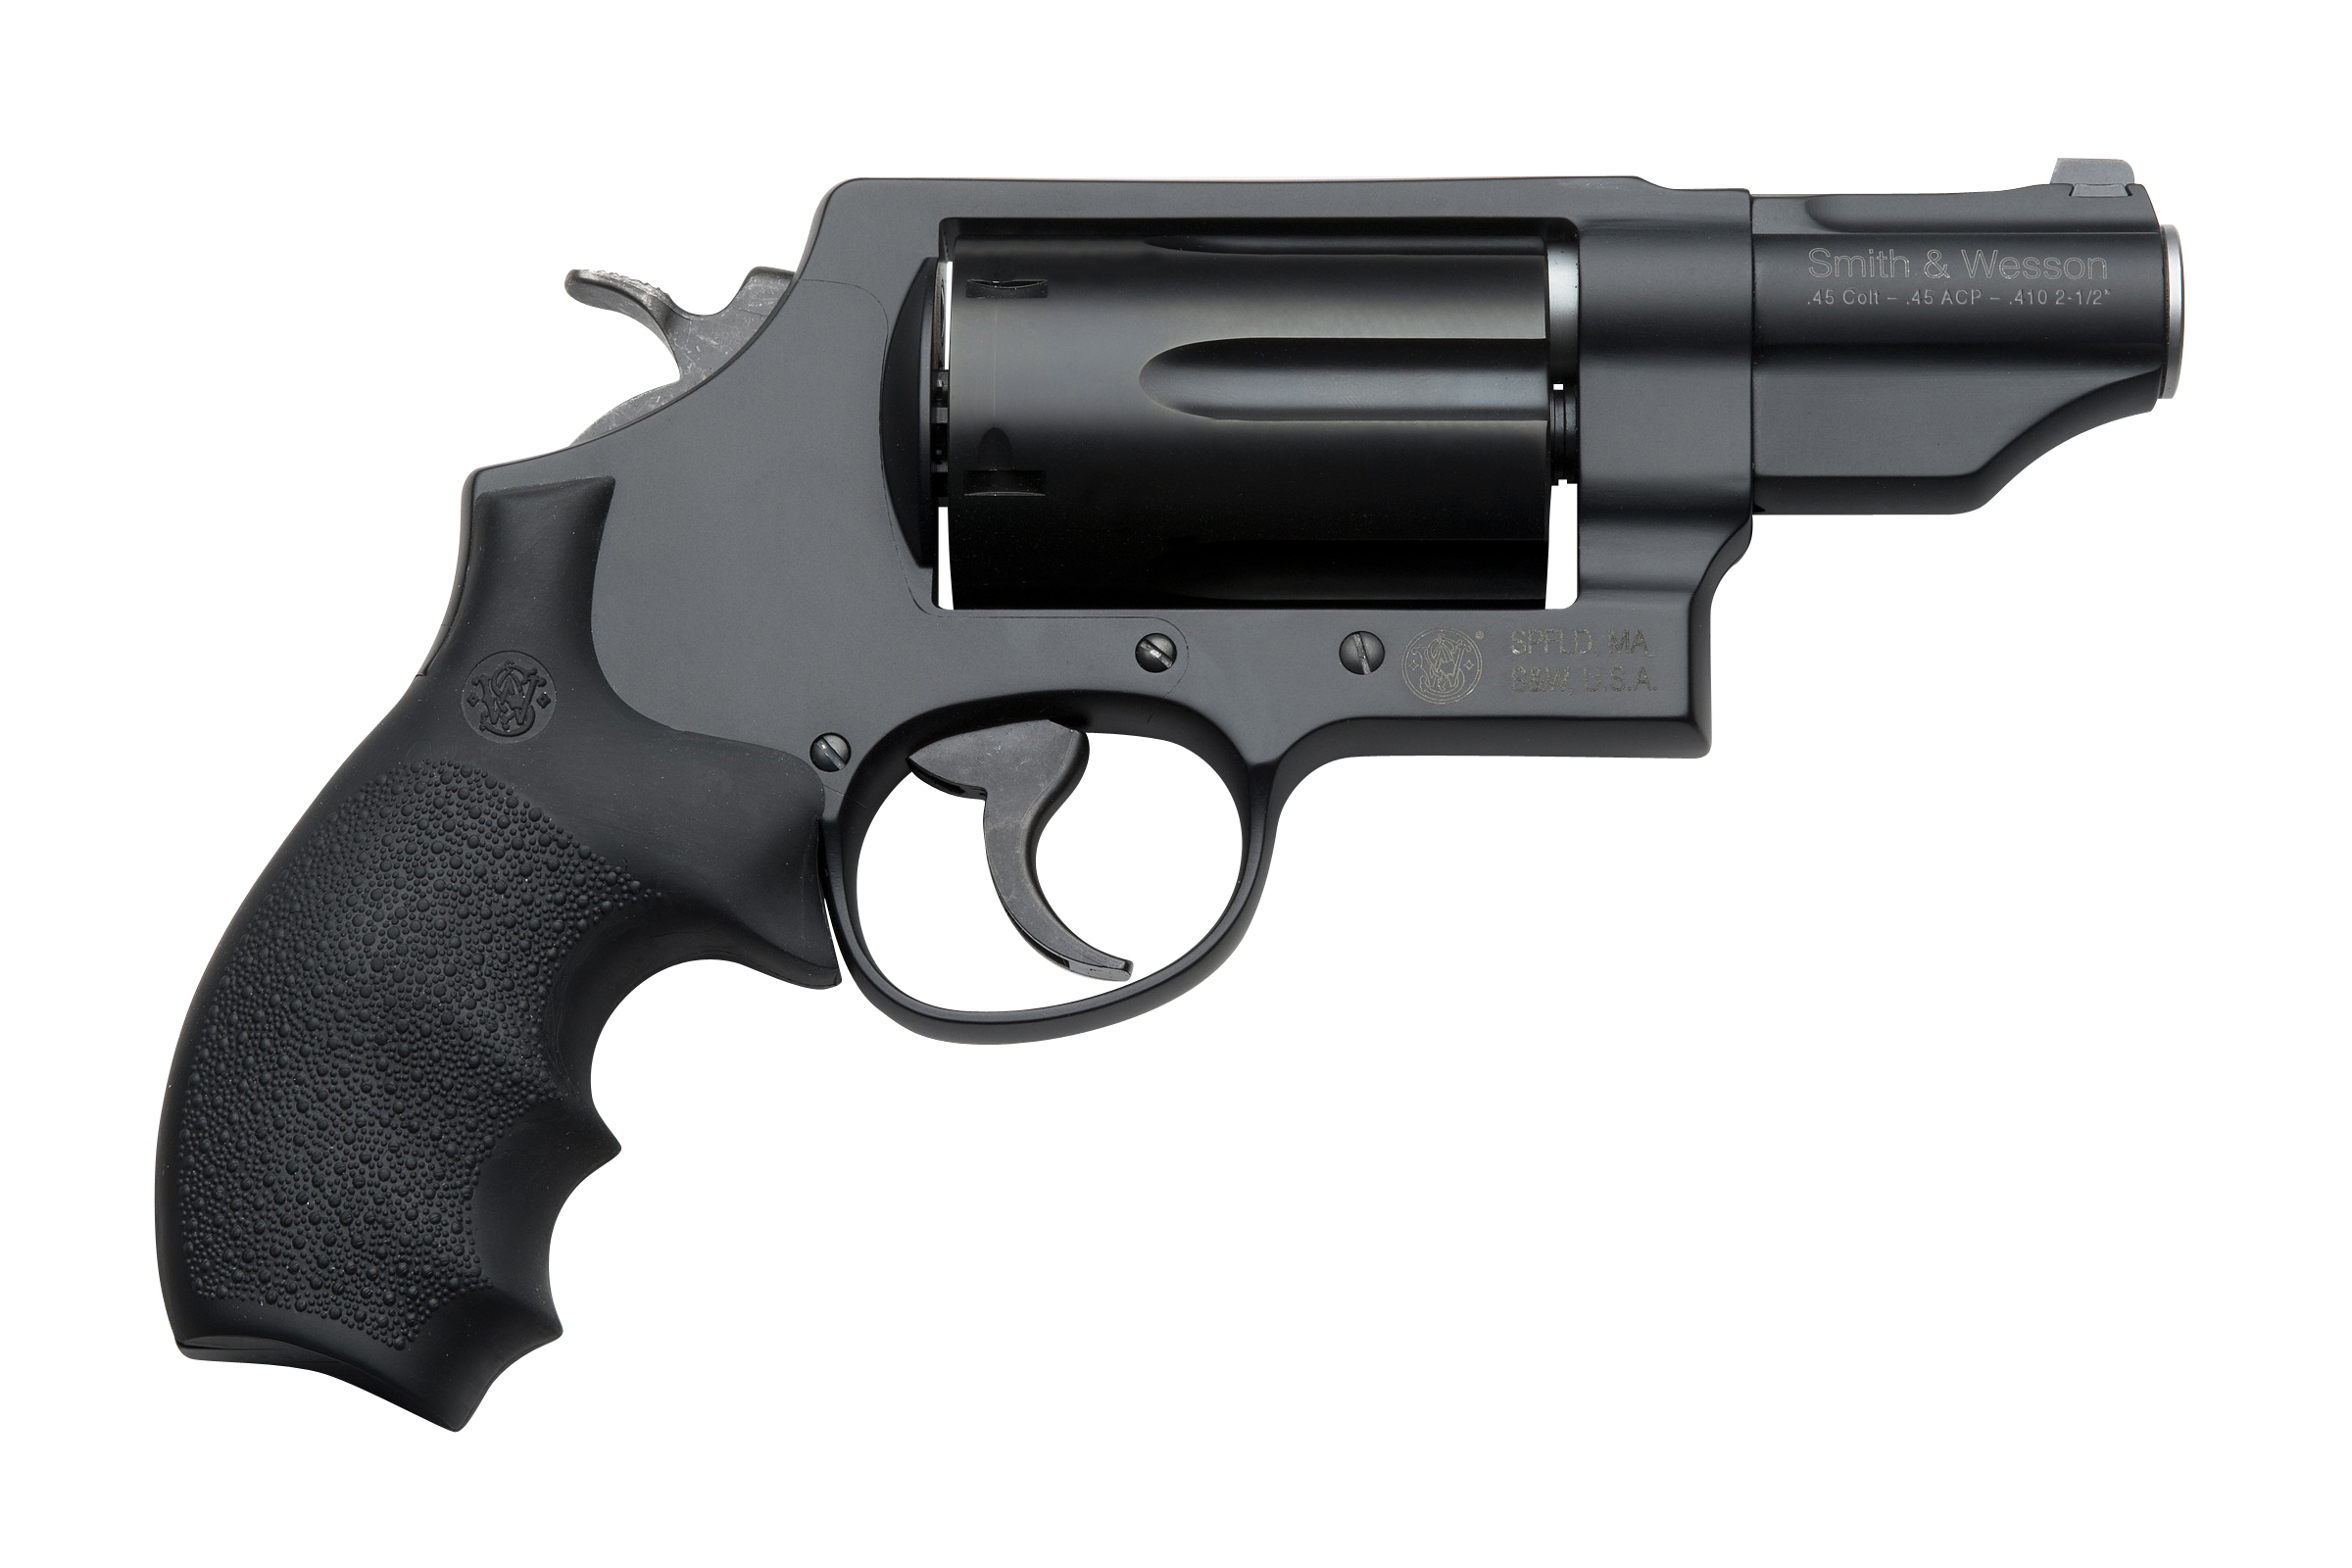 Smith and Wesson Governor 410 Bore | 45 Colt | 45 ACP